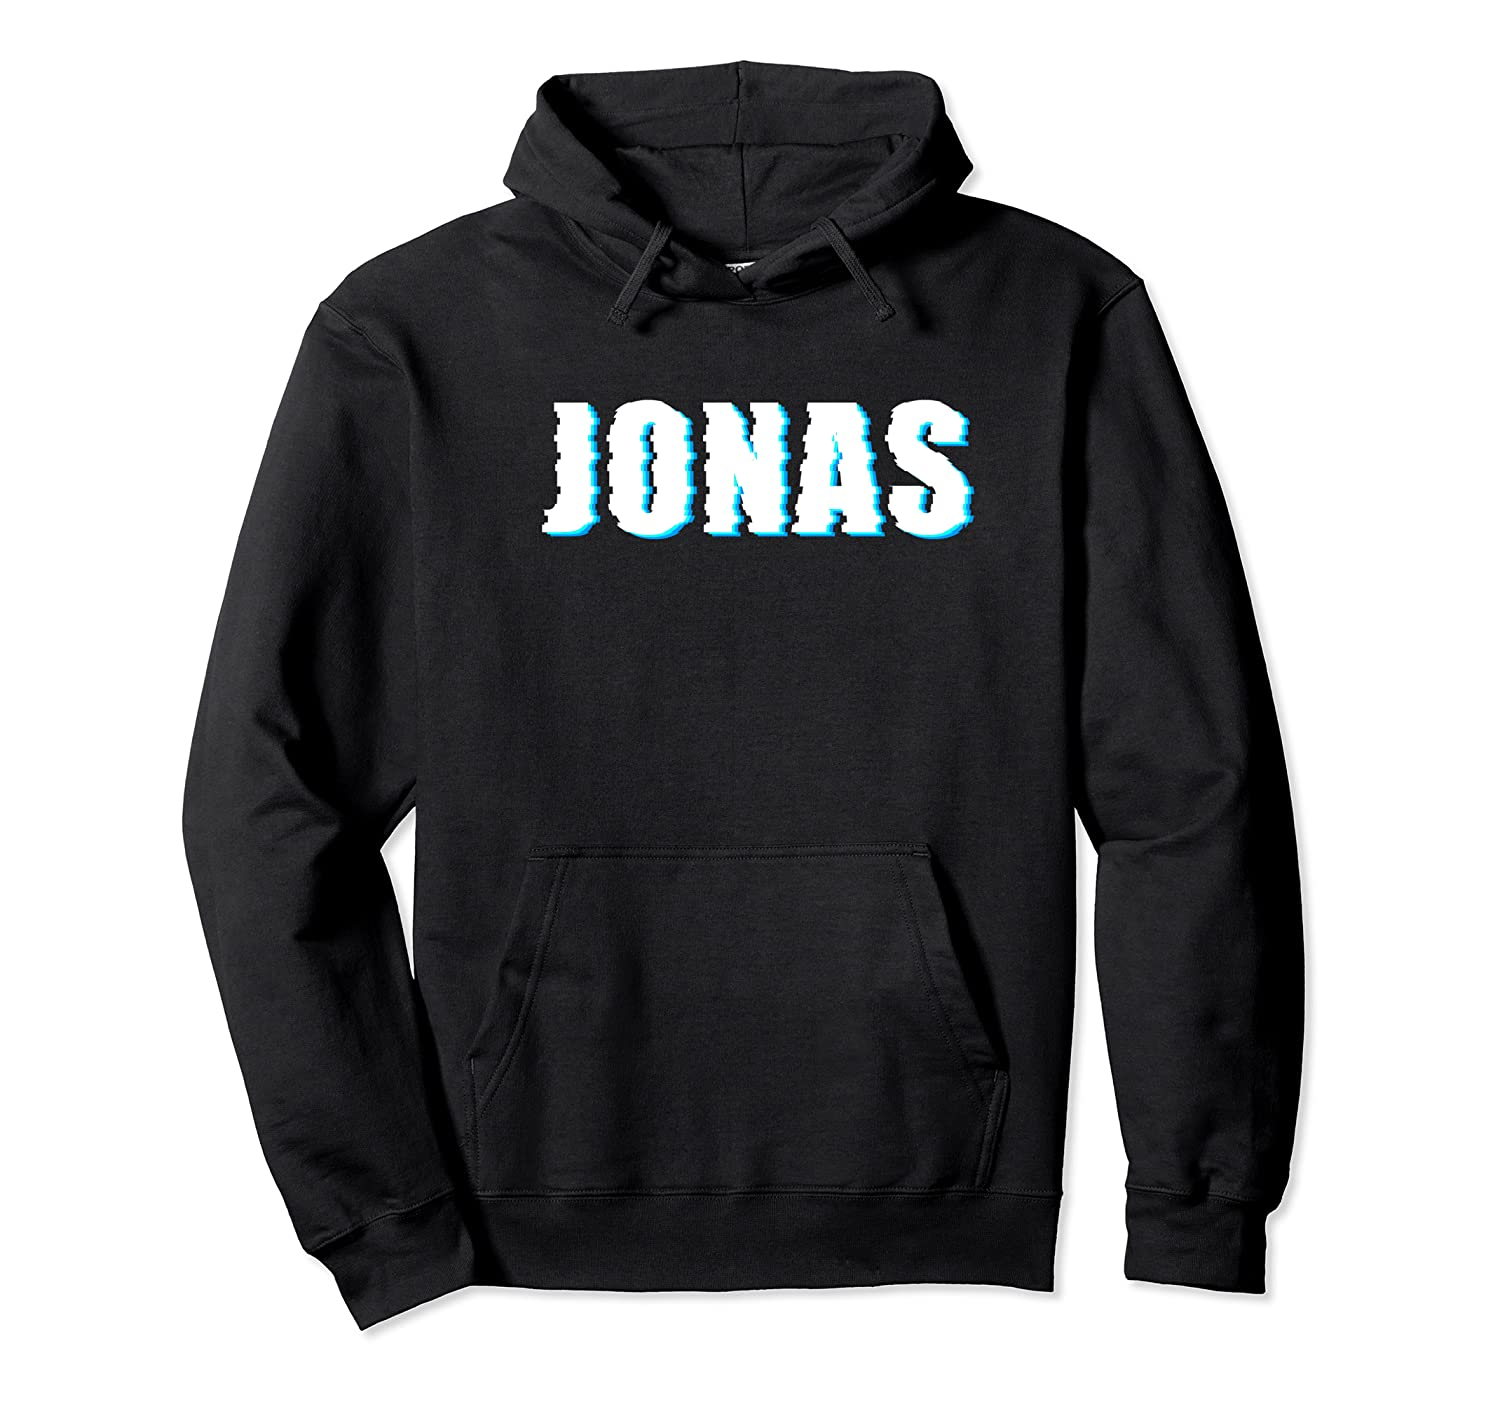 Jonas First Given Name Pride Funny Cool Shirts Unisex Pullover Hoodie